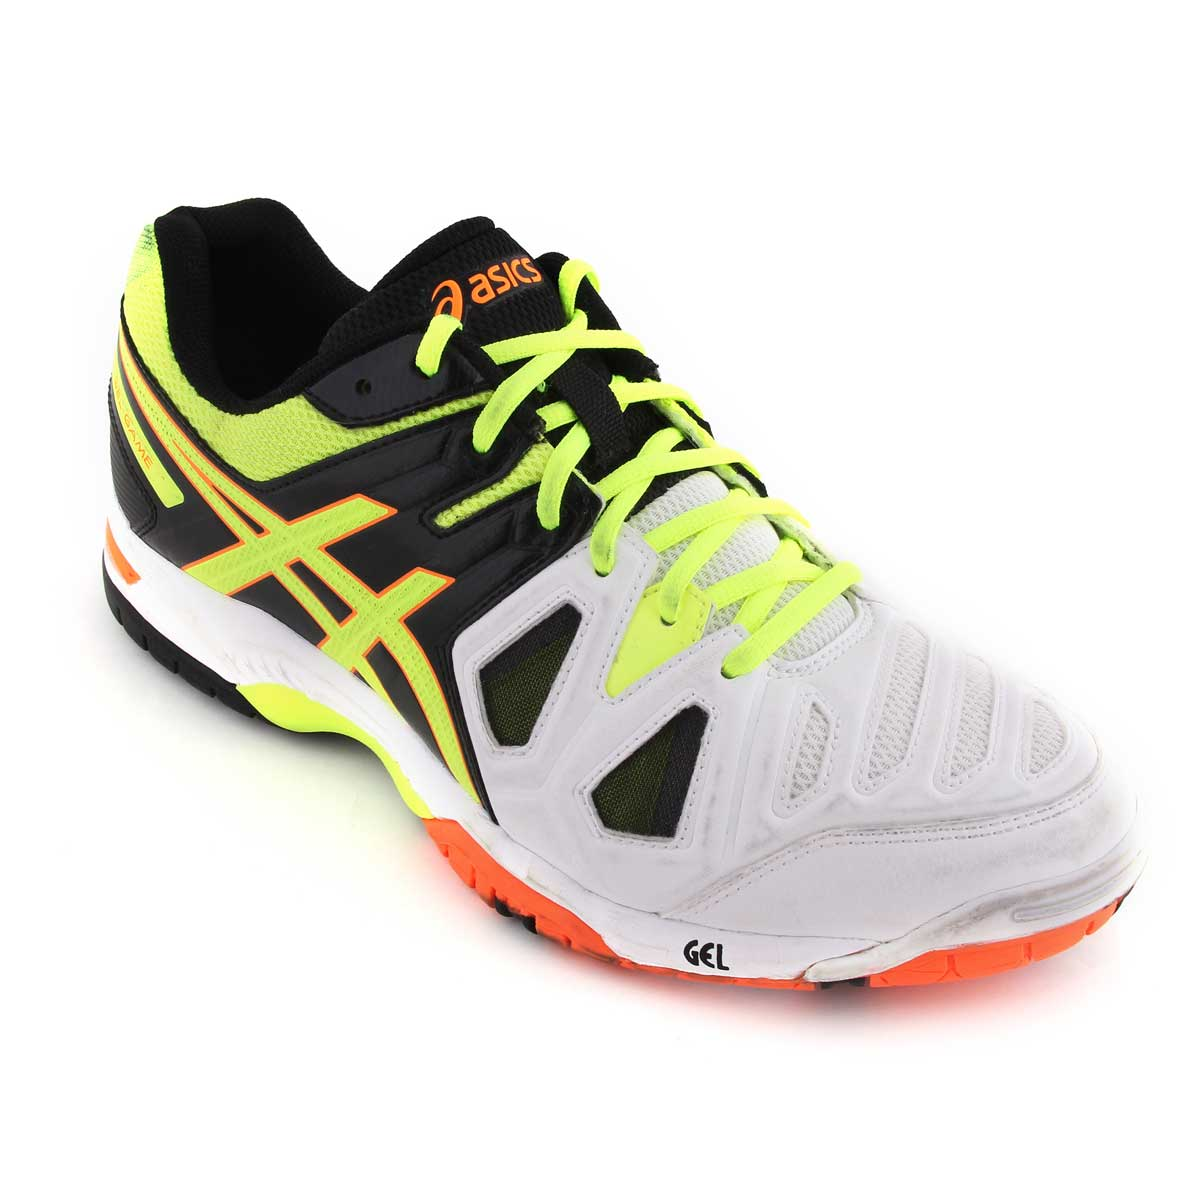 Tennis Shoes, Tennis, Sports, Buy, Asics, Asics Gel-Game 5 Tennis Shoes ,